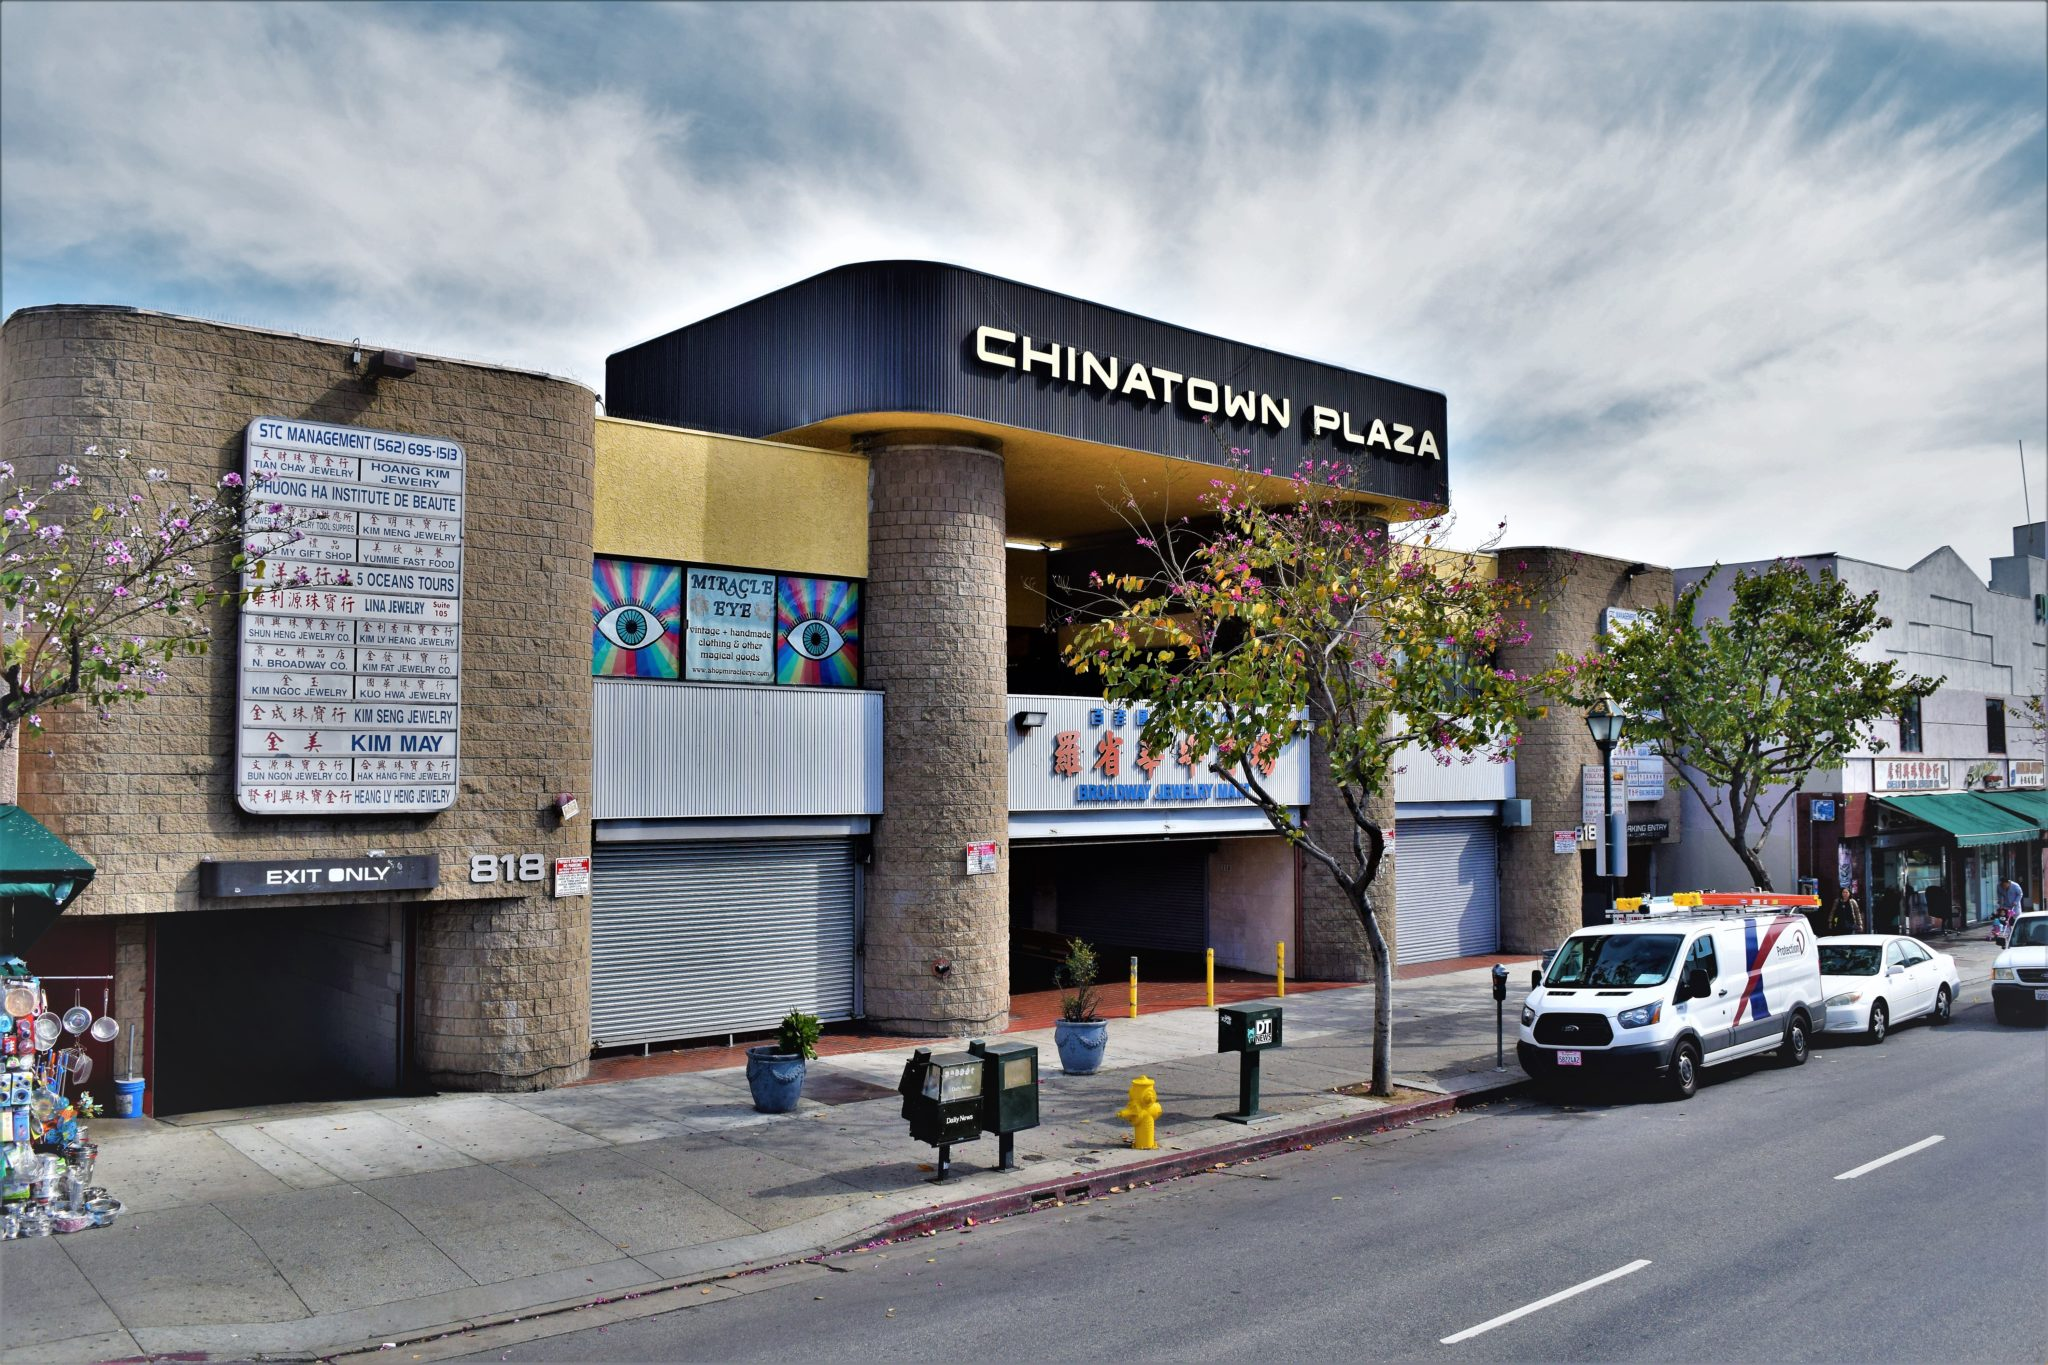 Chinatown Plaza, free things to do in Los Angeles, california